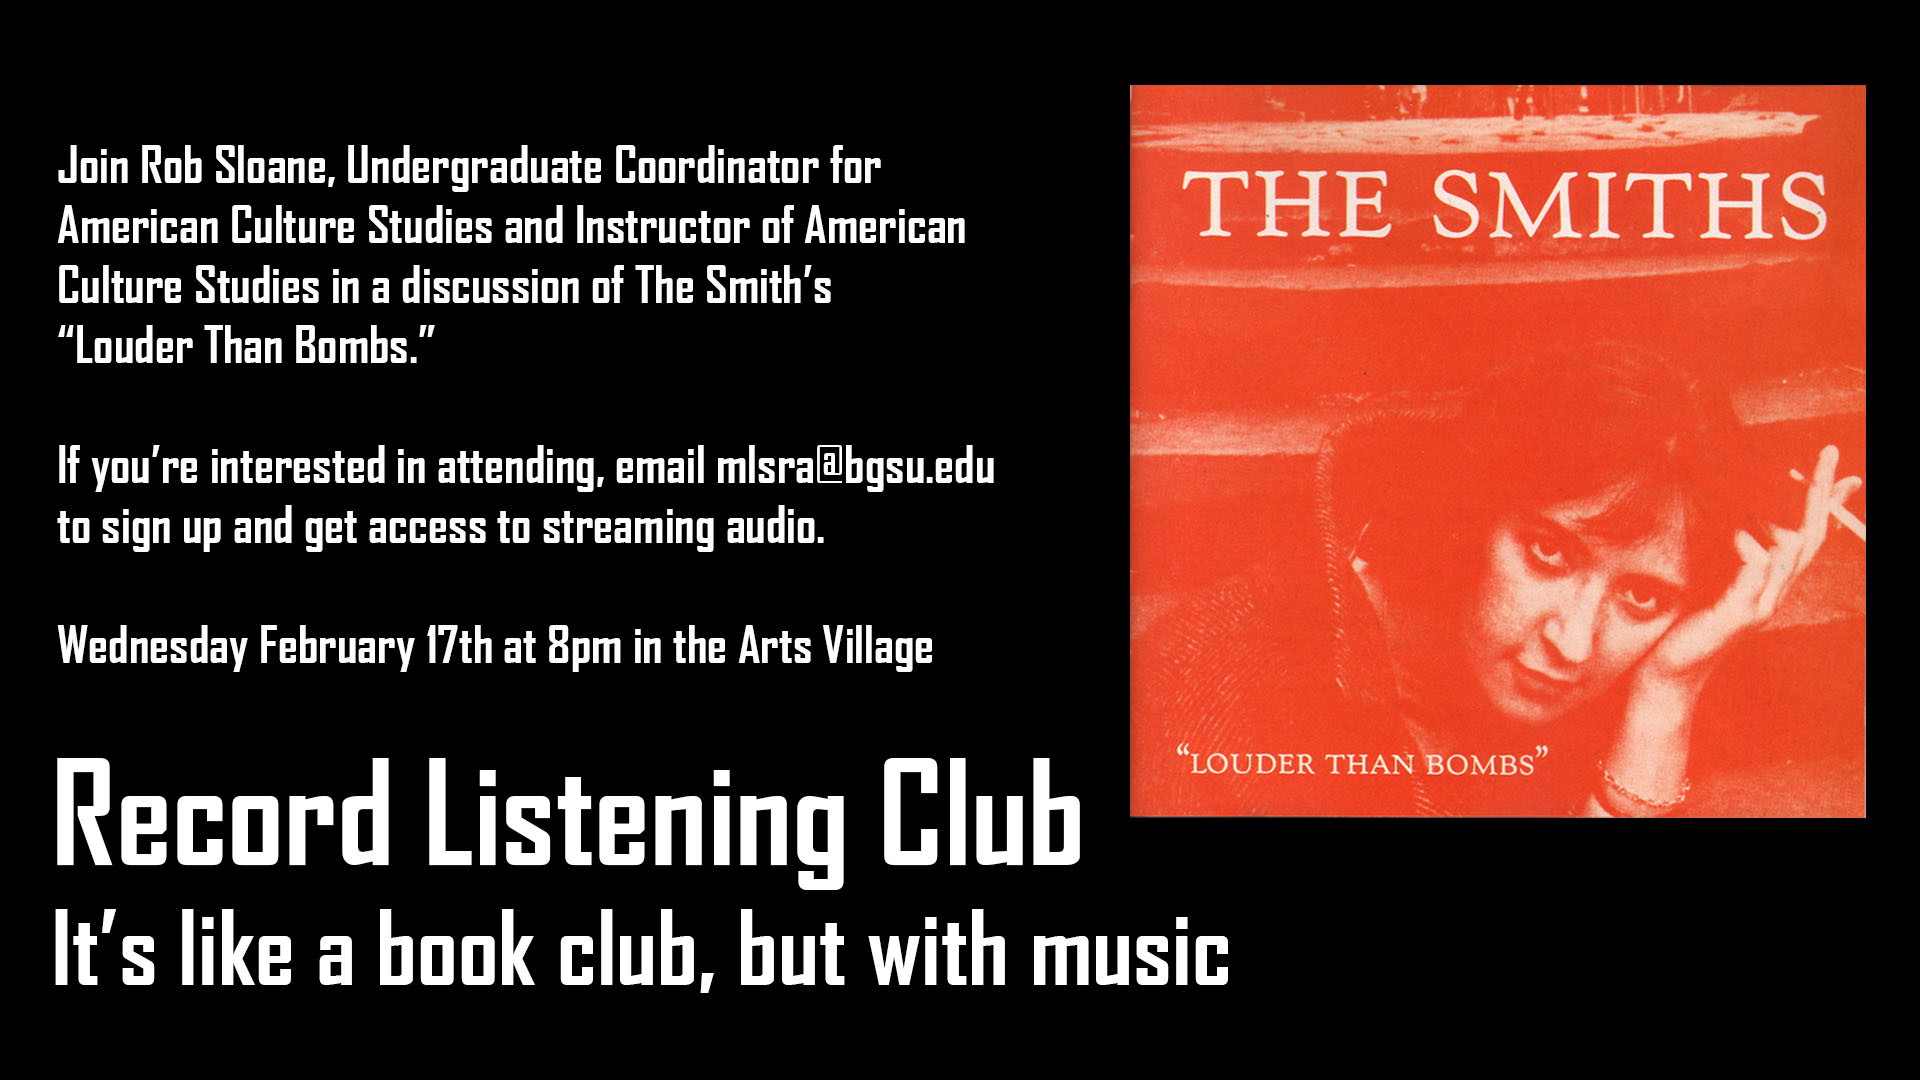 Join Rob Sloane, Undergraduate Coordinator for American Culture Studies and Instructor of American Culture Studies in a discussion of The Smith's Louder than Bombs. If you're interested in attending, email mlsra@bgsu.edu to sign up and get access to streaming audio. Wednesday February 17th at 8pm in the Arts Village. Record Listening Club: It's like bookclub, but with music.